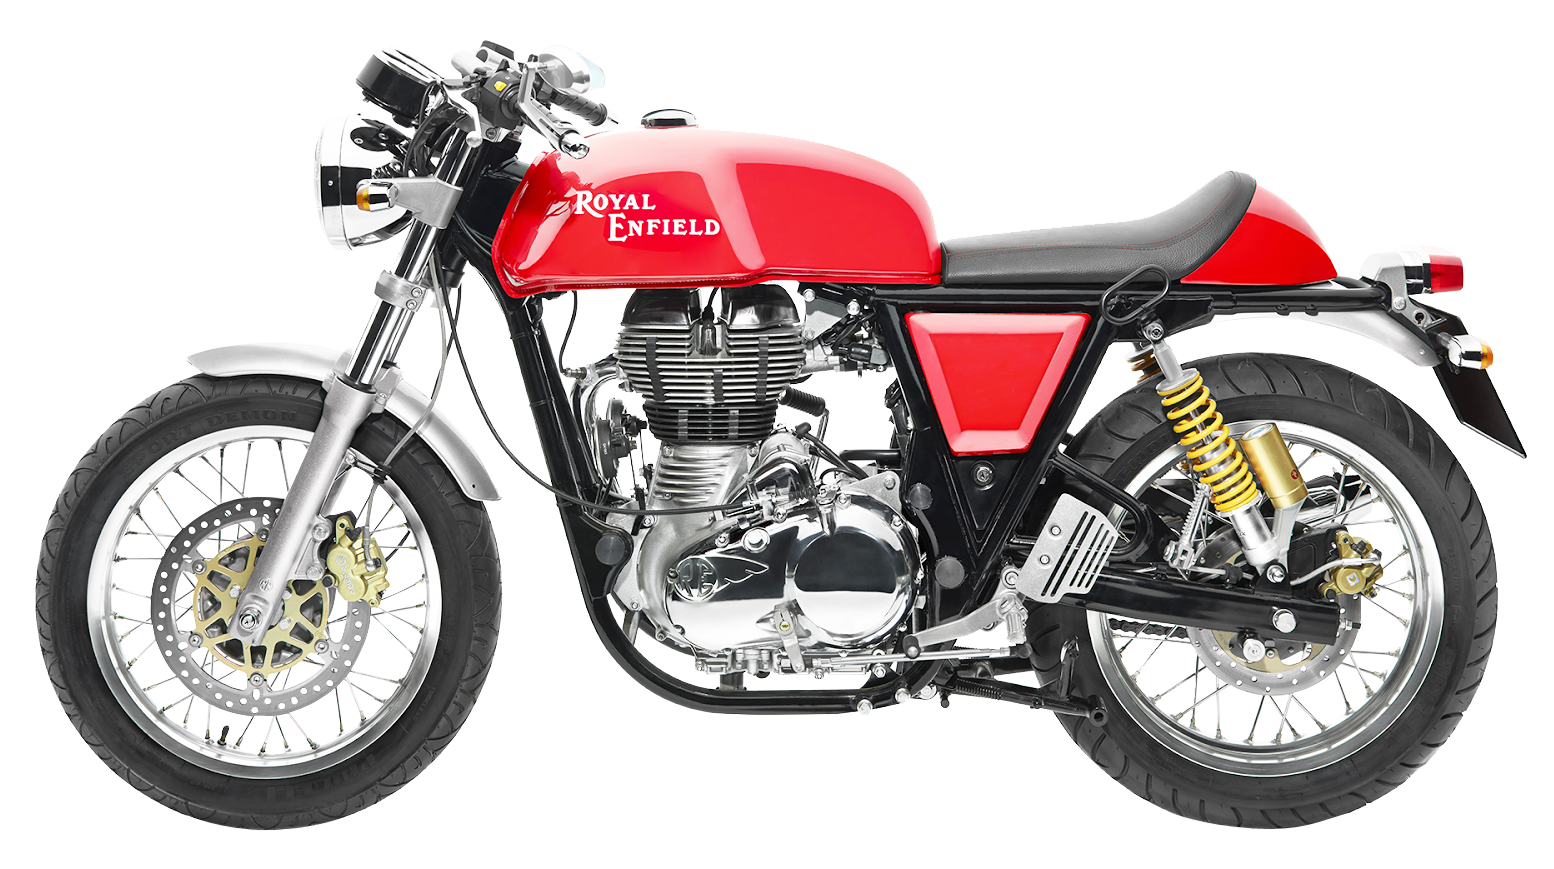 Continental gt png image. Clipart bike bike royal enfield